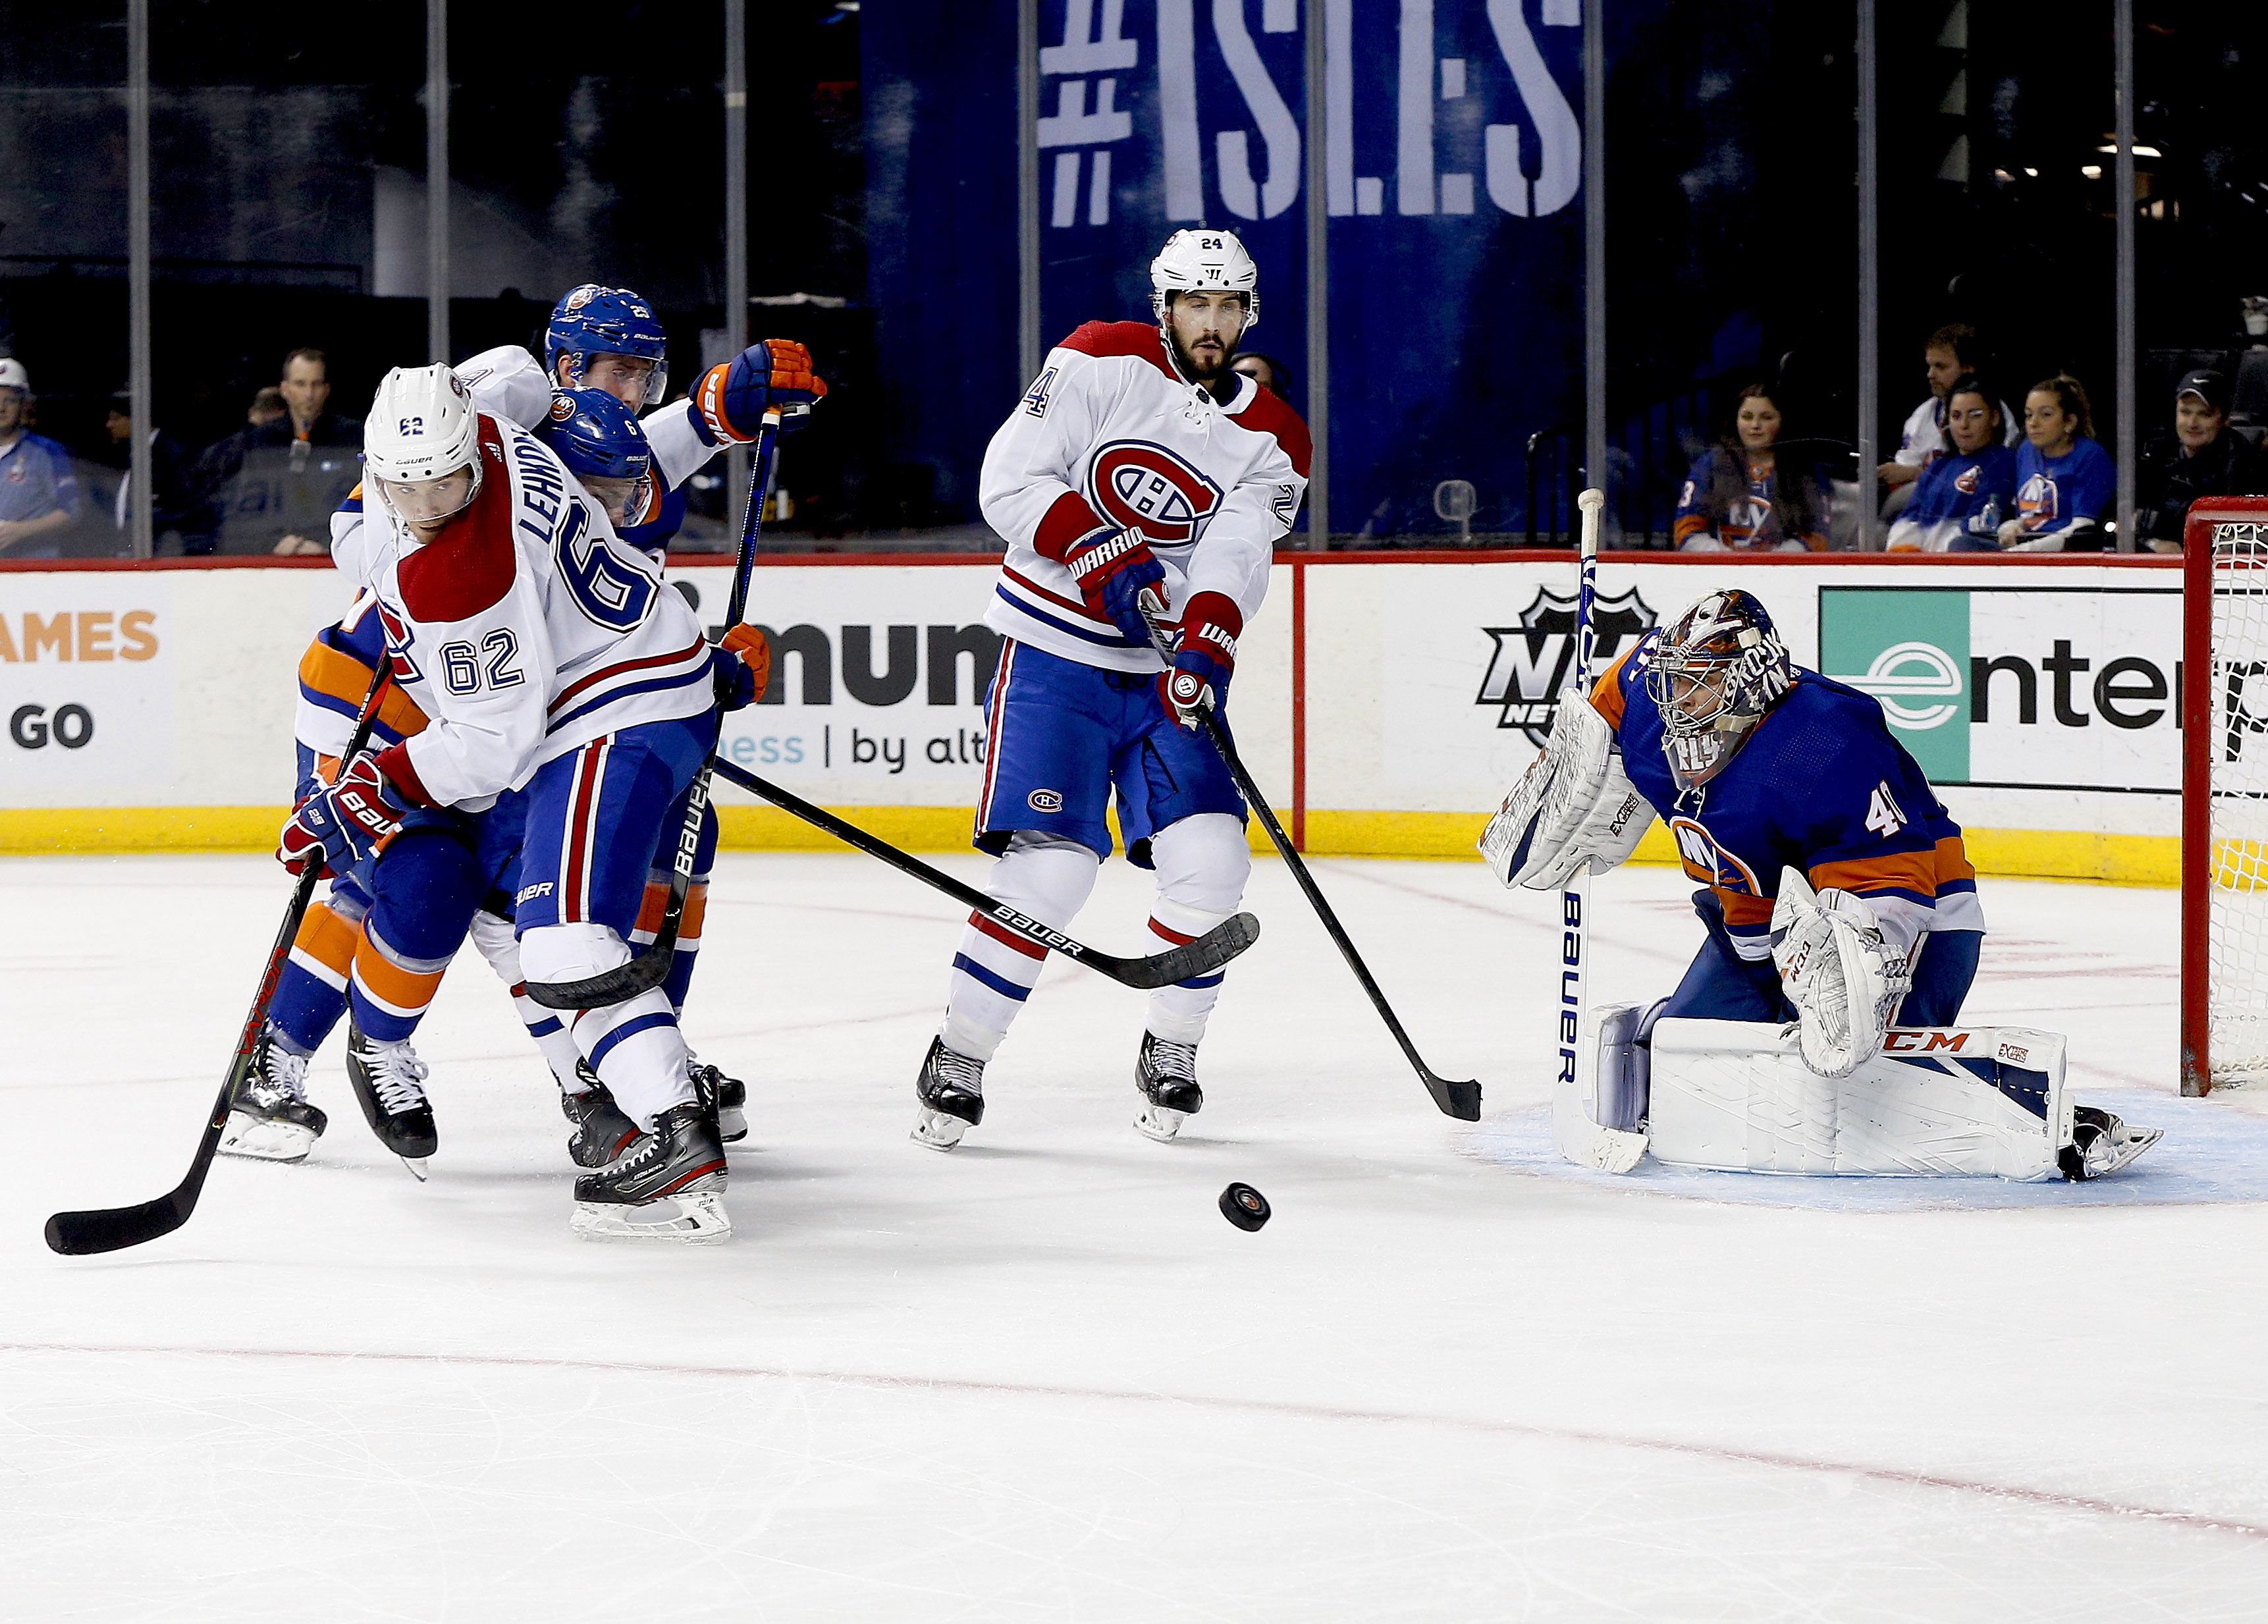 Three takeaways from the Islanders' 6-2 loss to the Canadiens